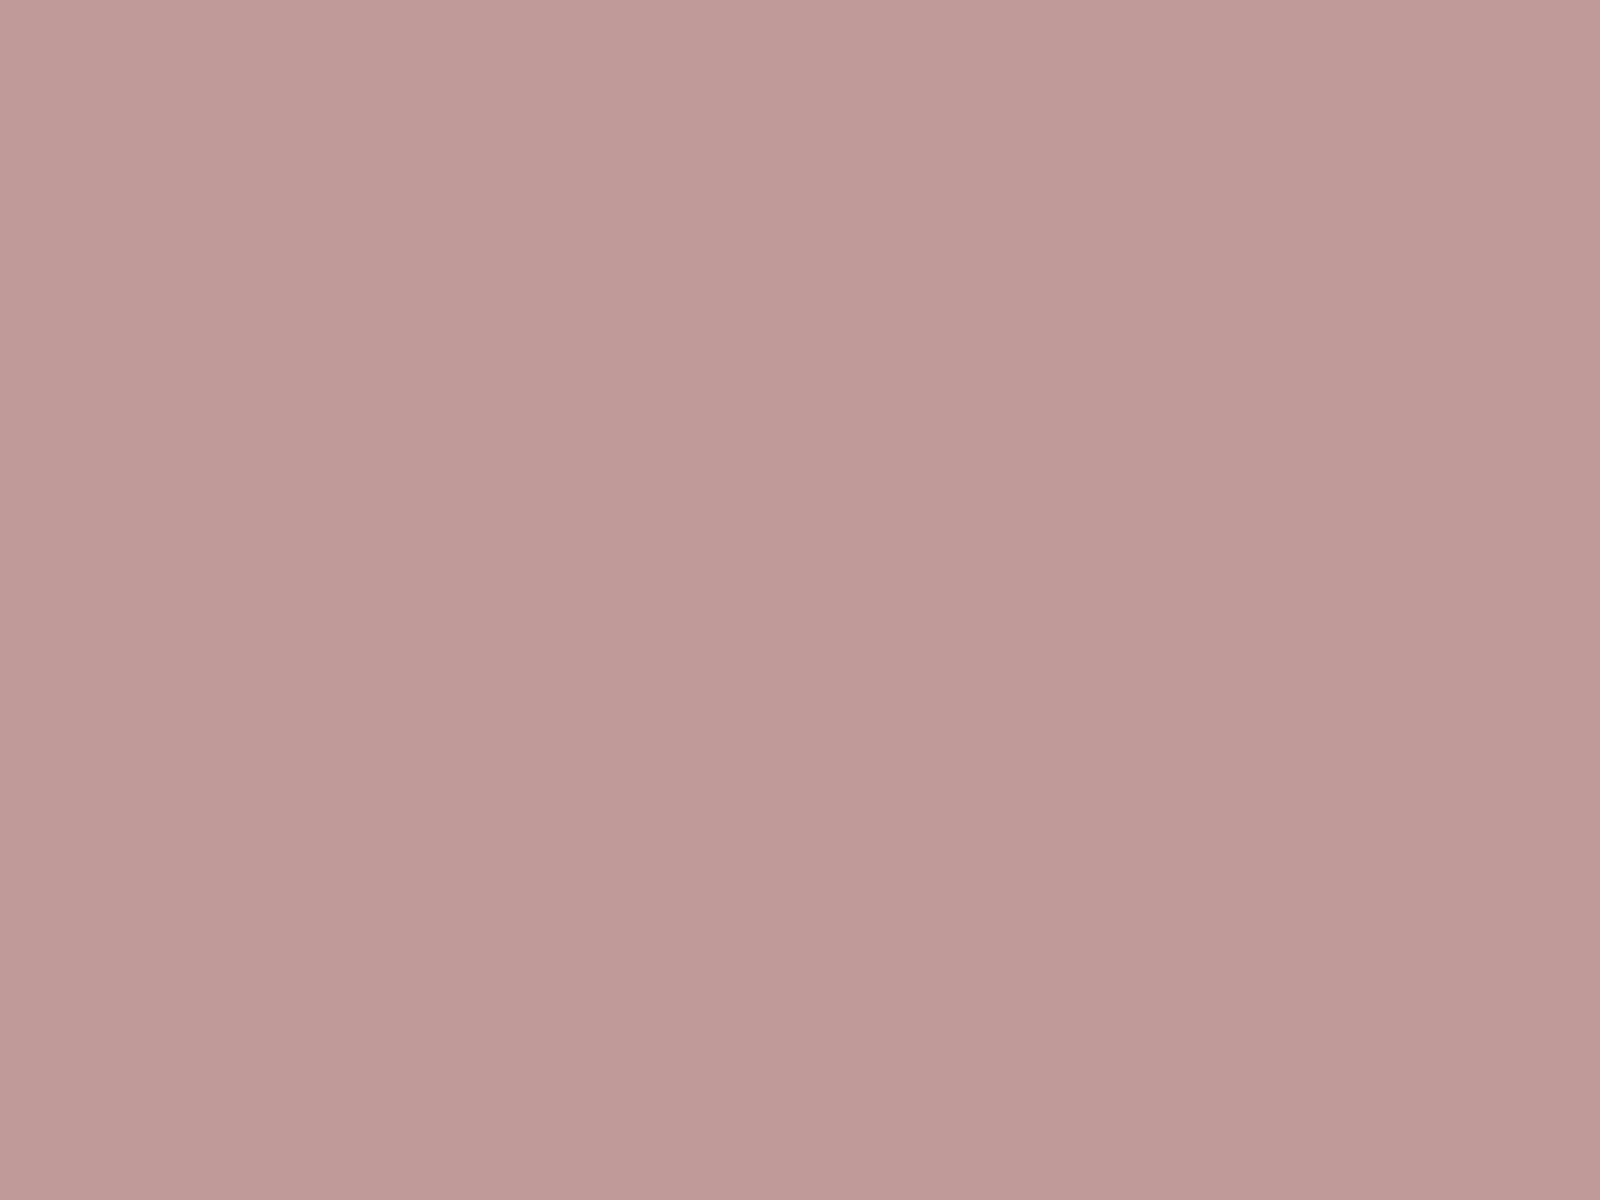 1600x1200 Tuscany Solid Color Background